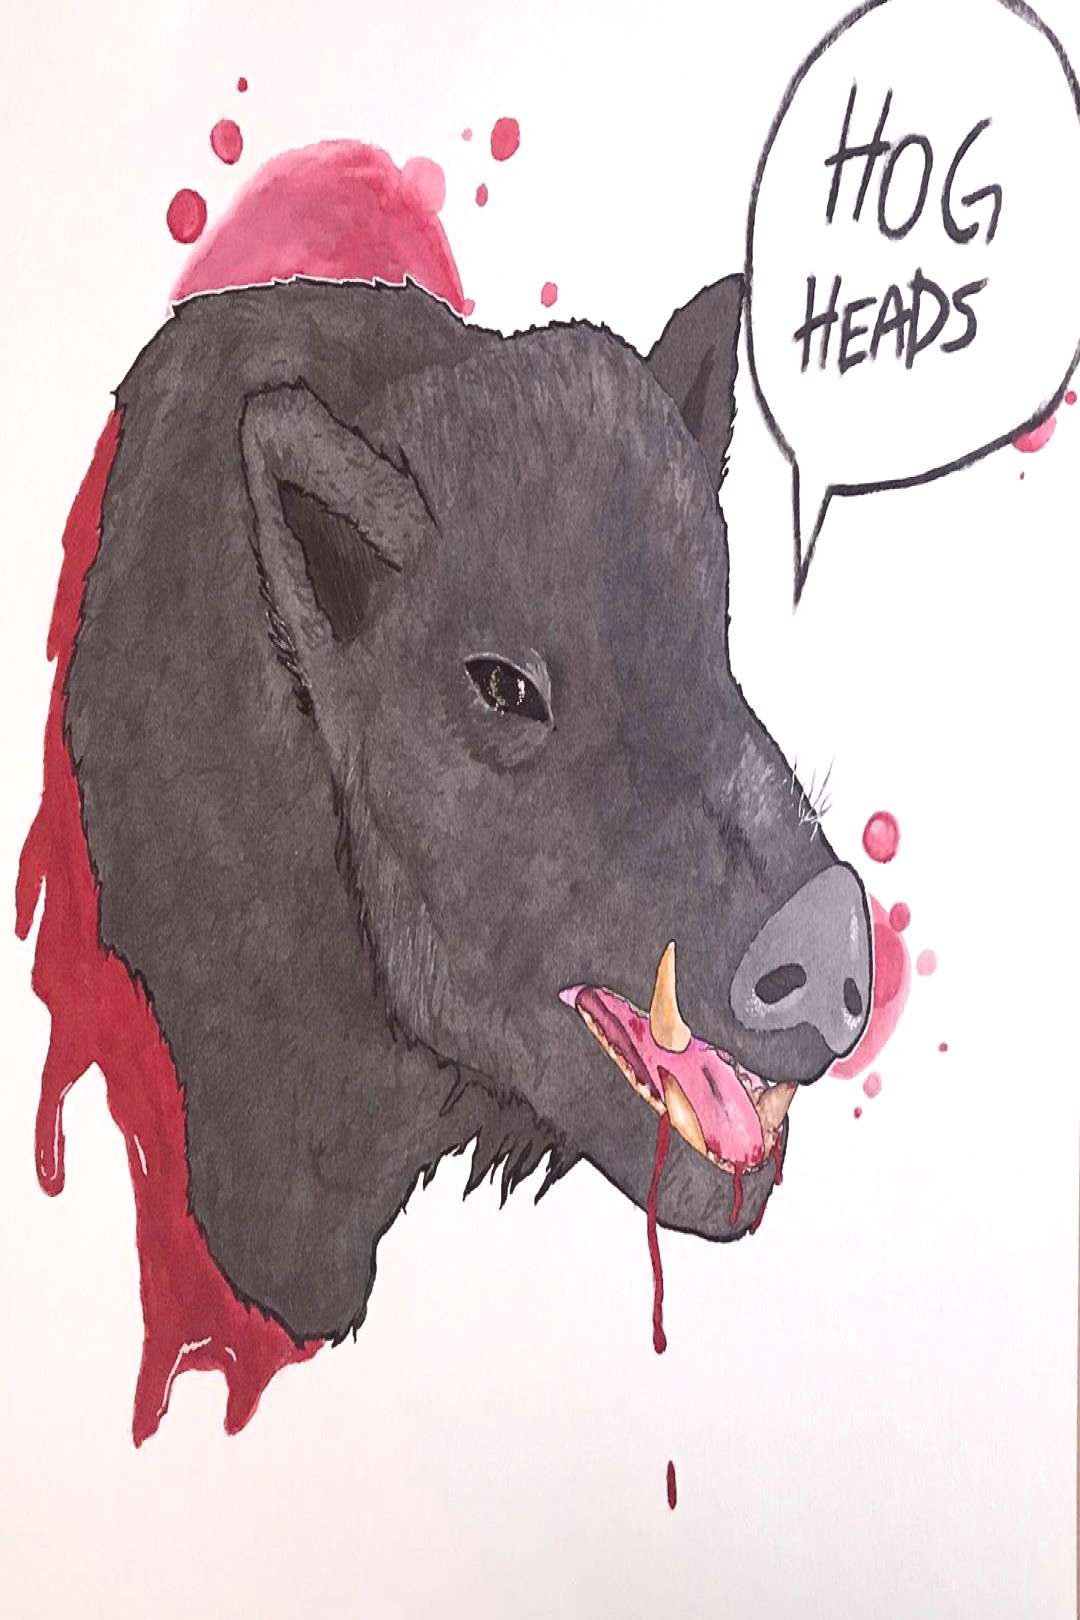 Still one of my prouder pieces #art #drawing #watercolor #hog #pi